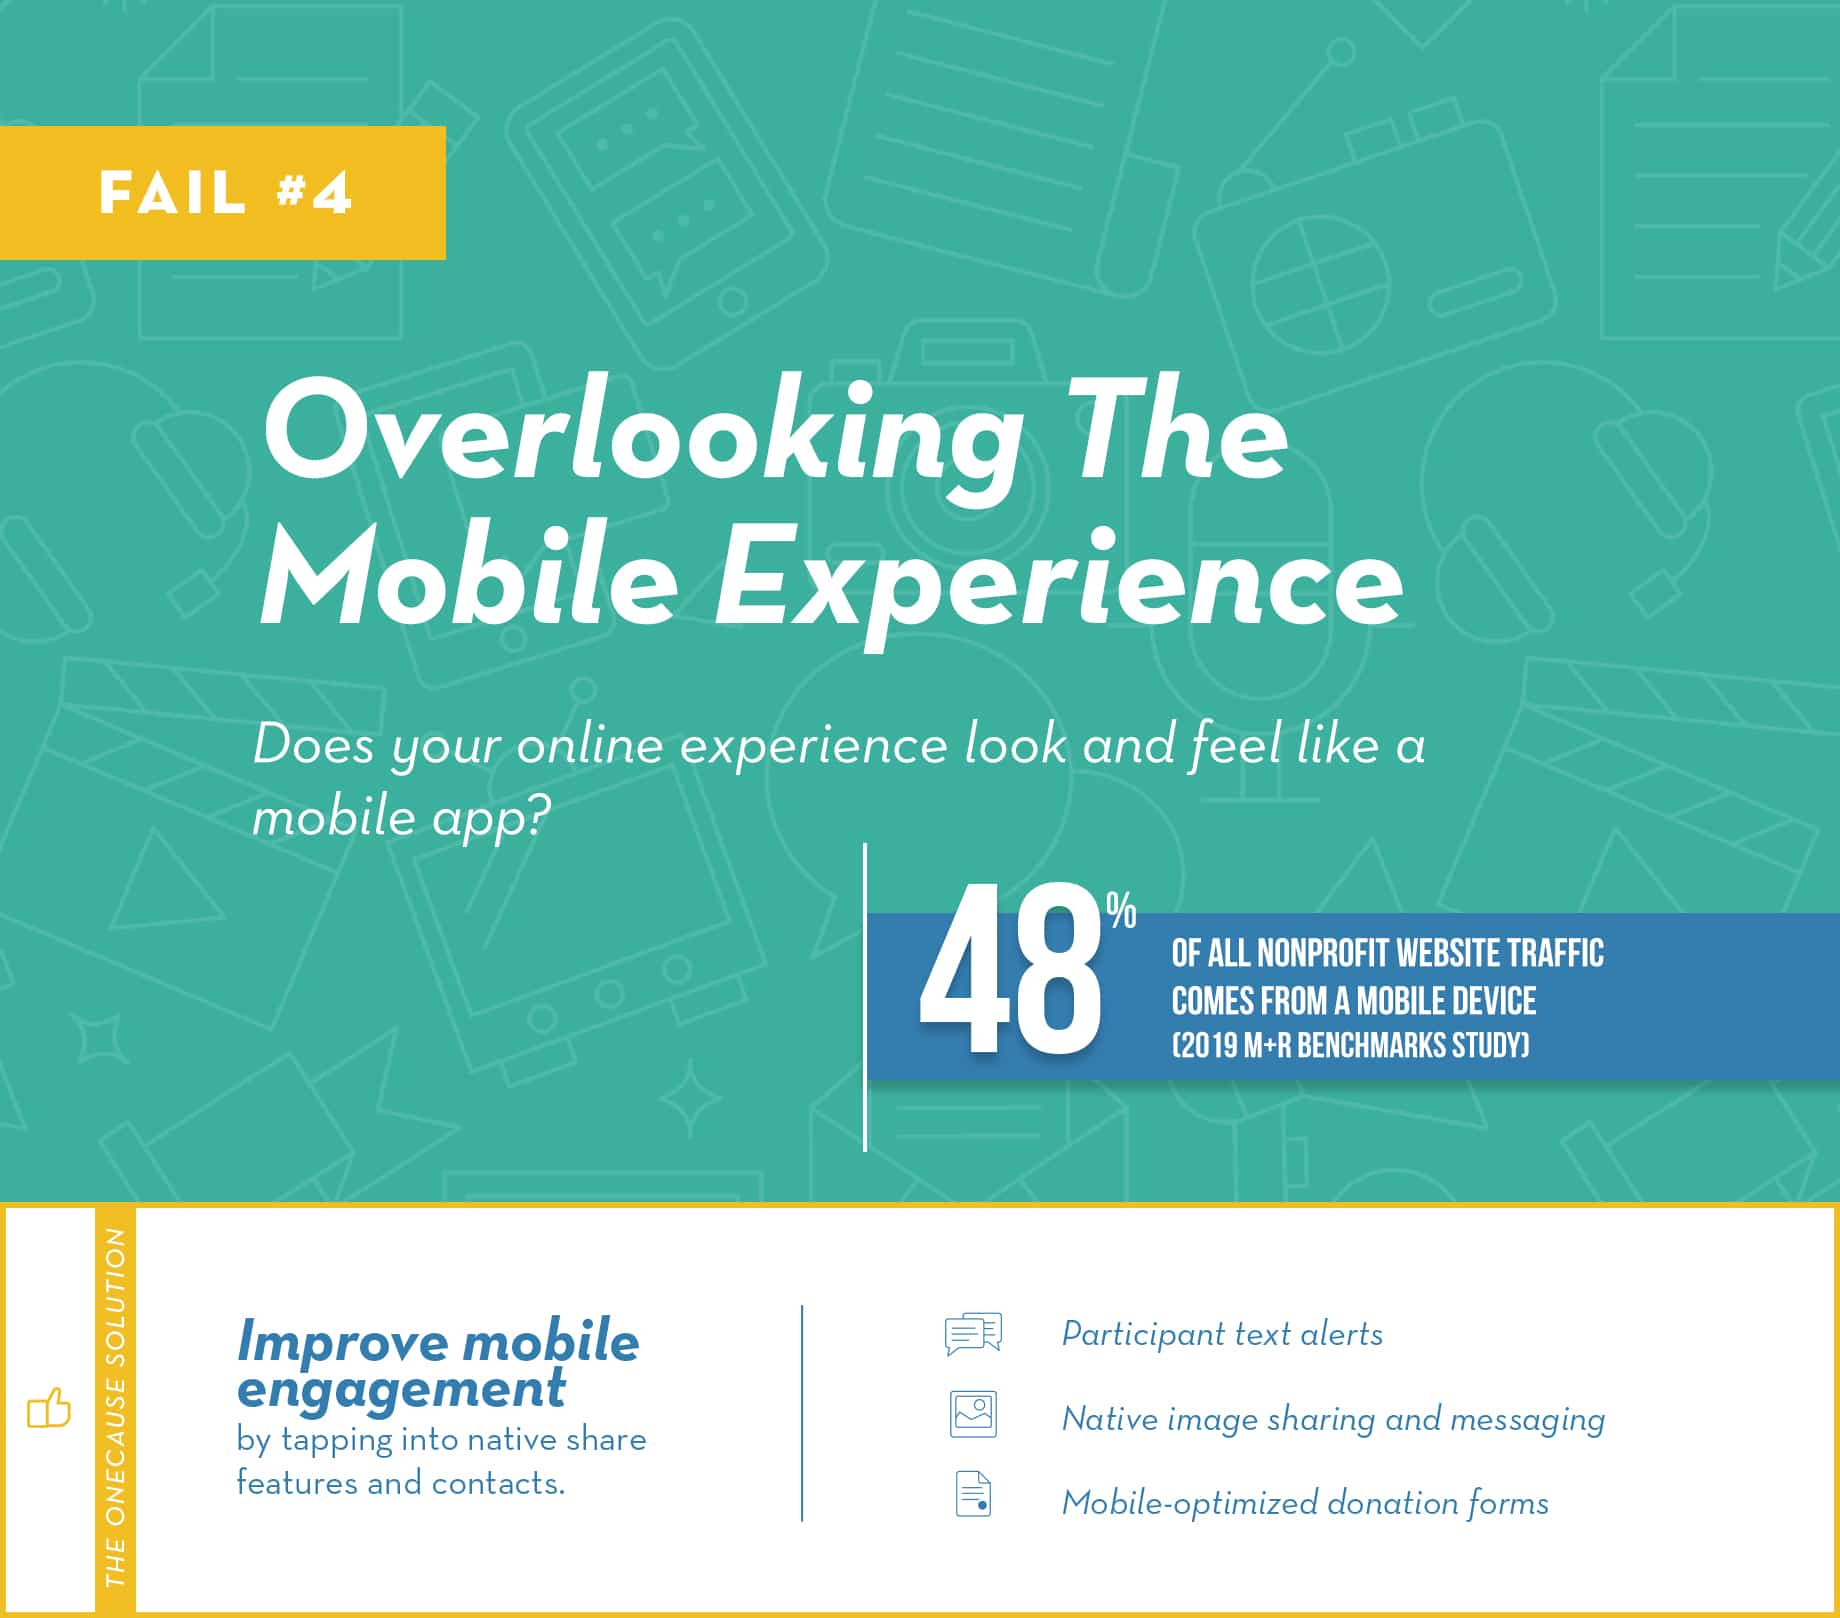 Fail #4: Overlooking the mobile experience. Does your online experience look and feel like a mobile app?